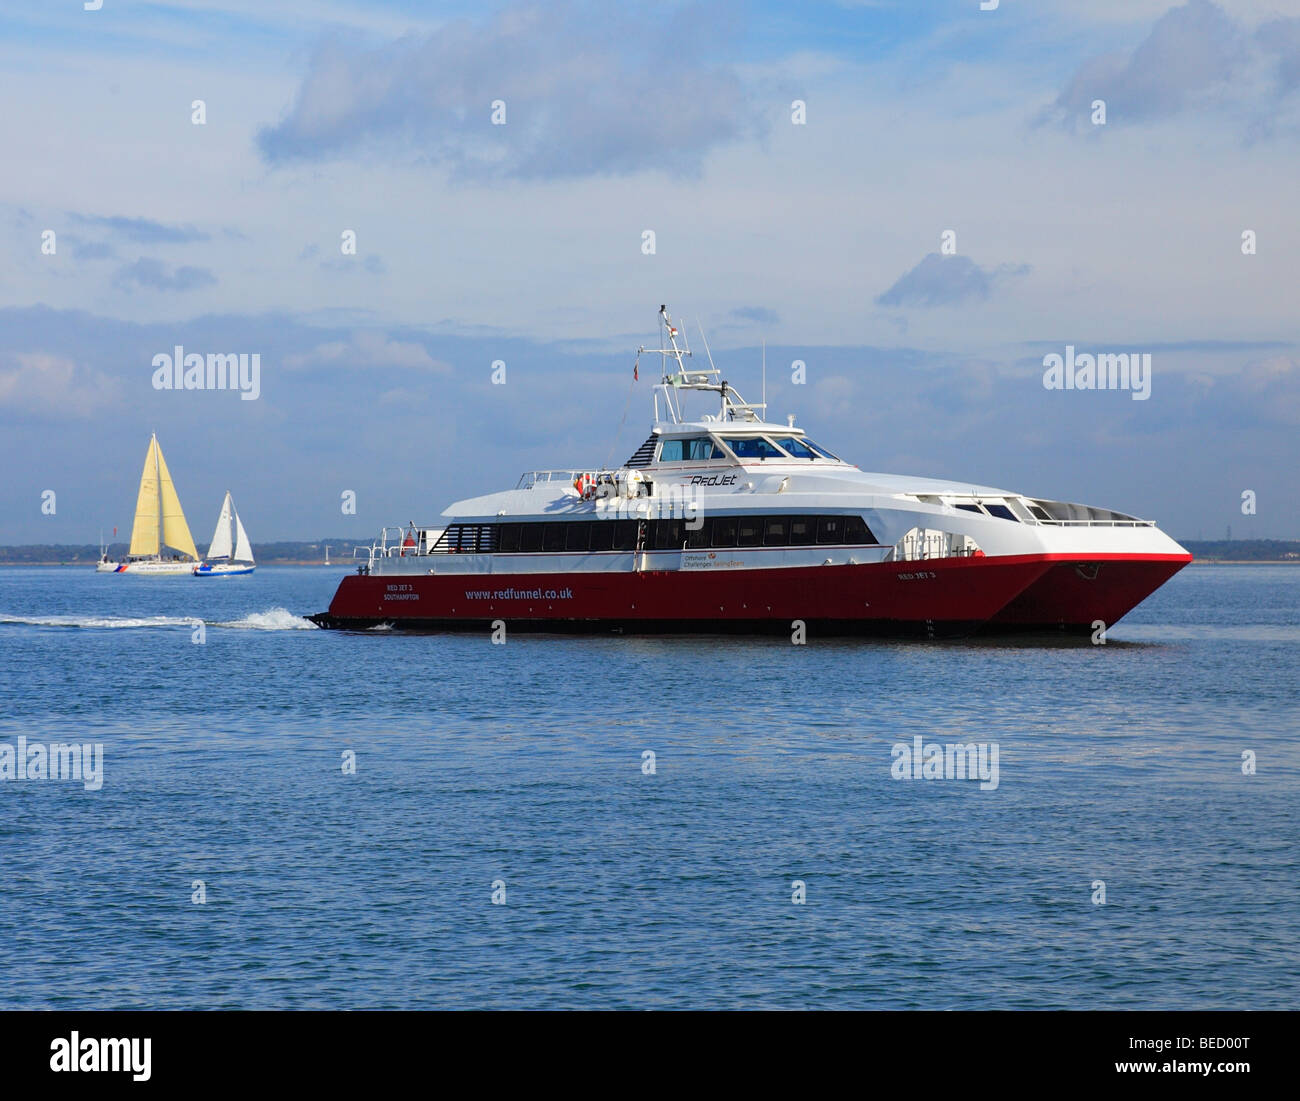 Red Jet 3 Red Funnel catamaran crossing from Southampton to Cowes. - Stock Image